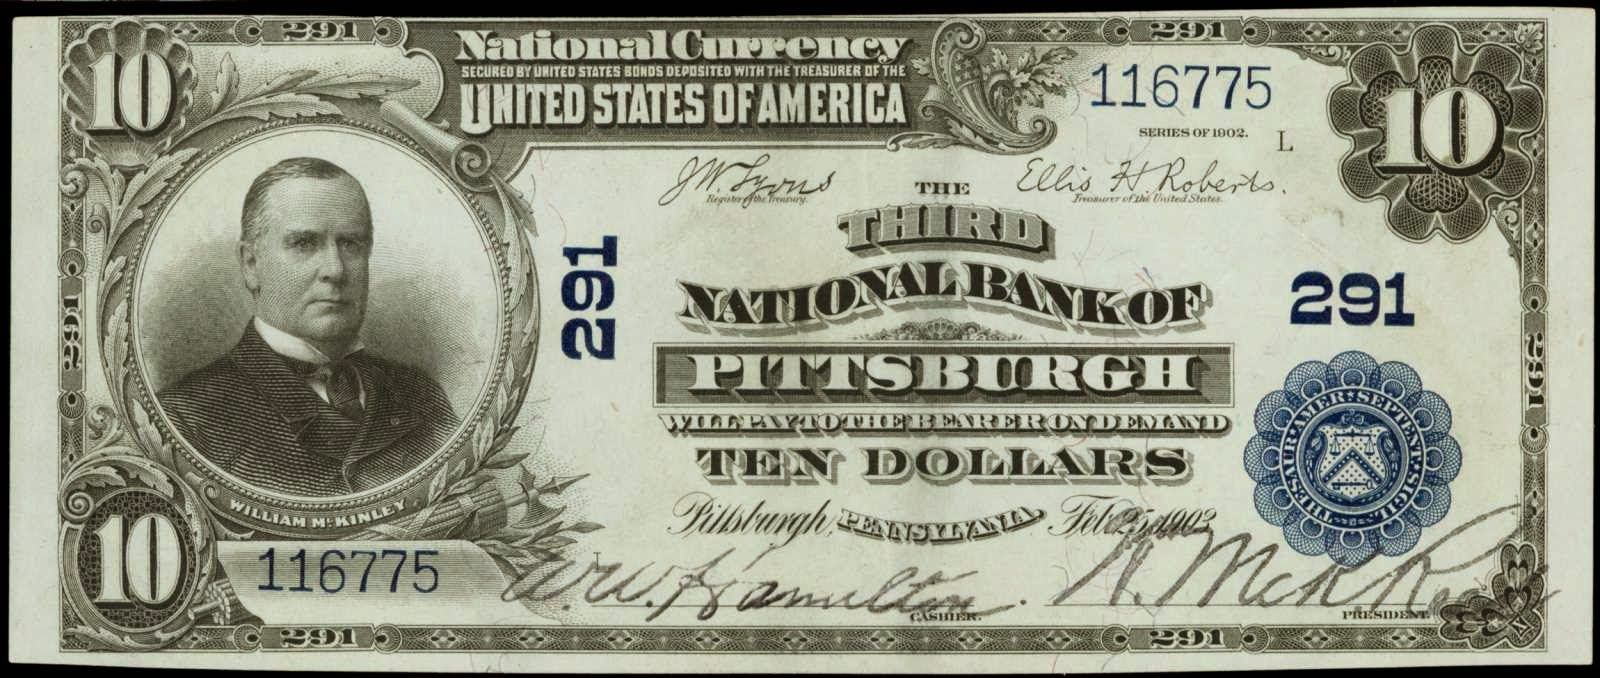 1902 Ten Dollar National Currency 291 The Third National Bank Of Pittsburgh Bank Notes Dollar Paper Currency